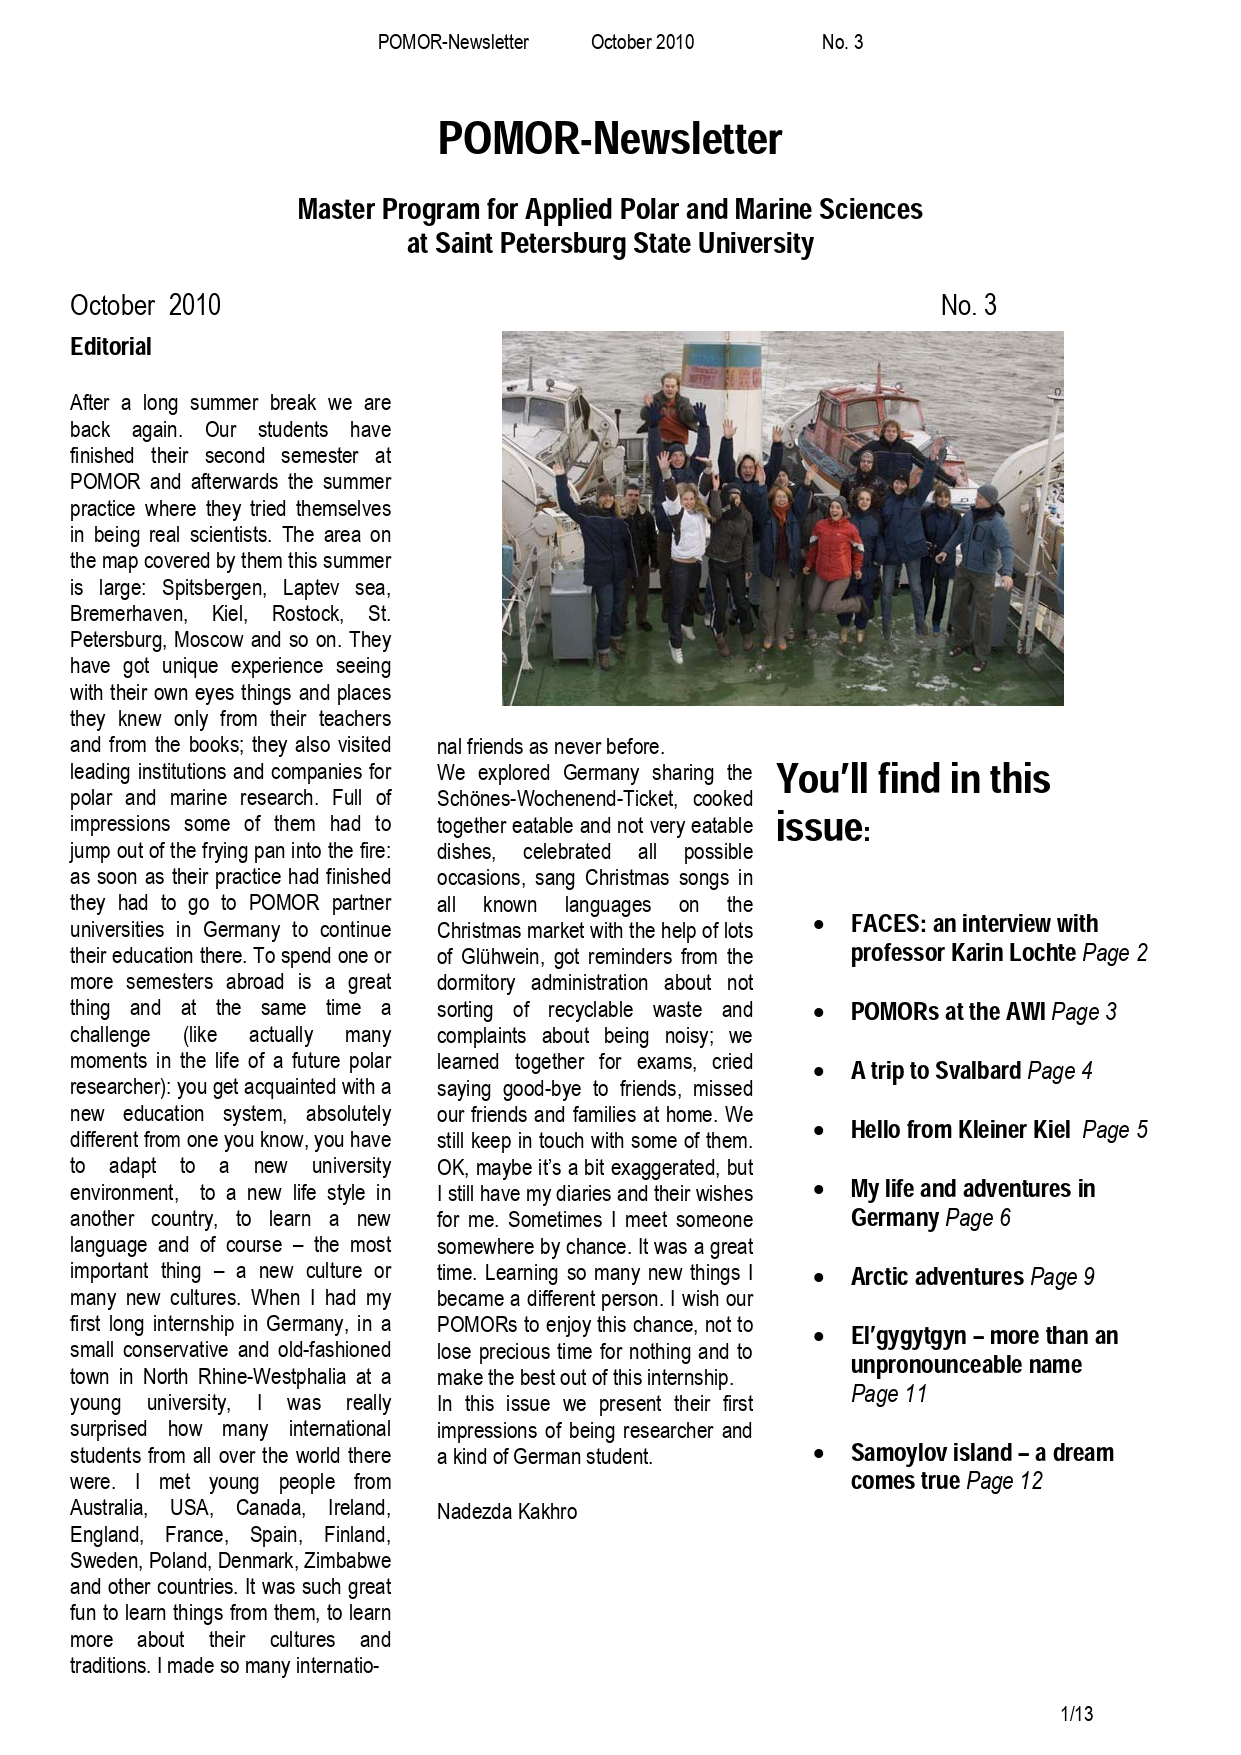 POMOR Newsletter 3 2 page 0001